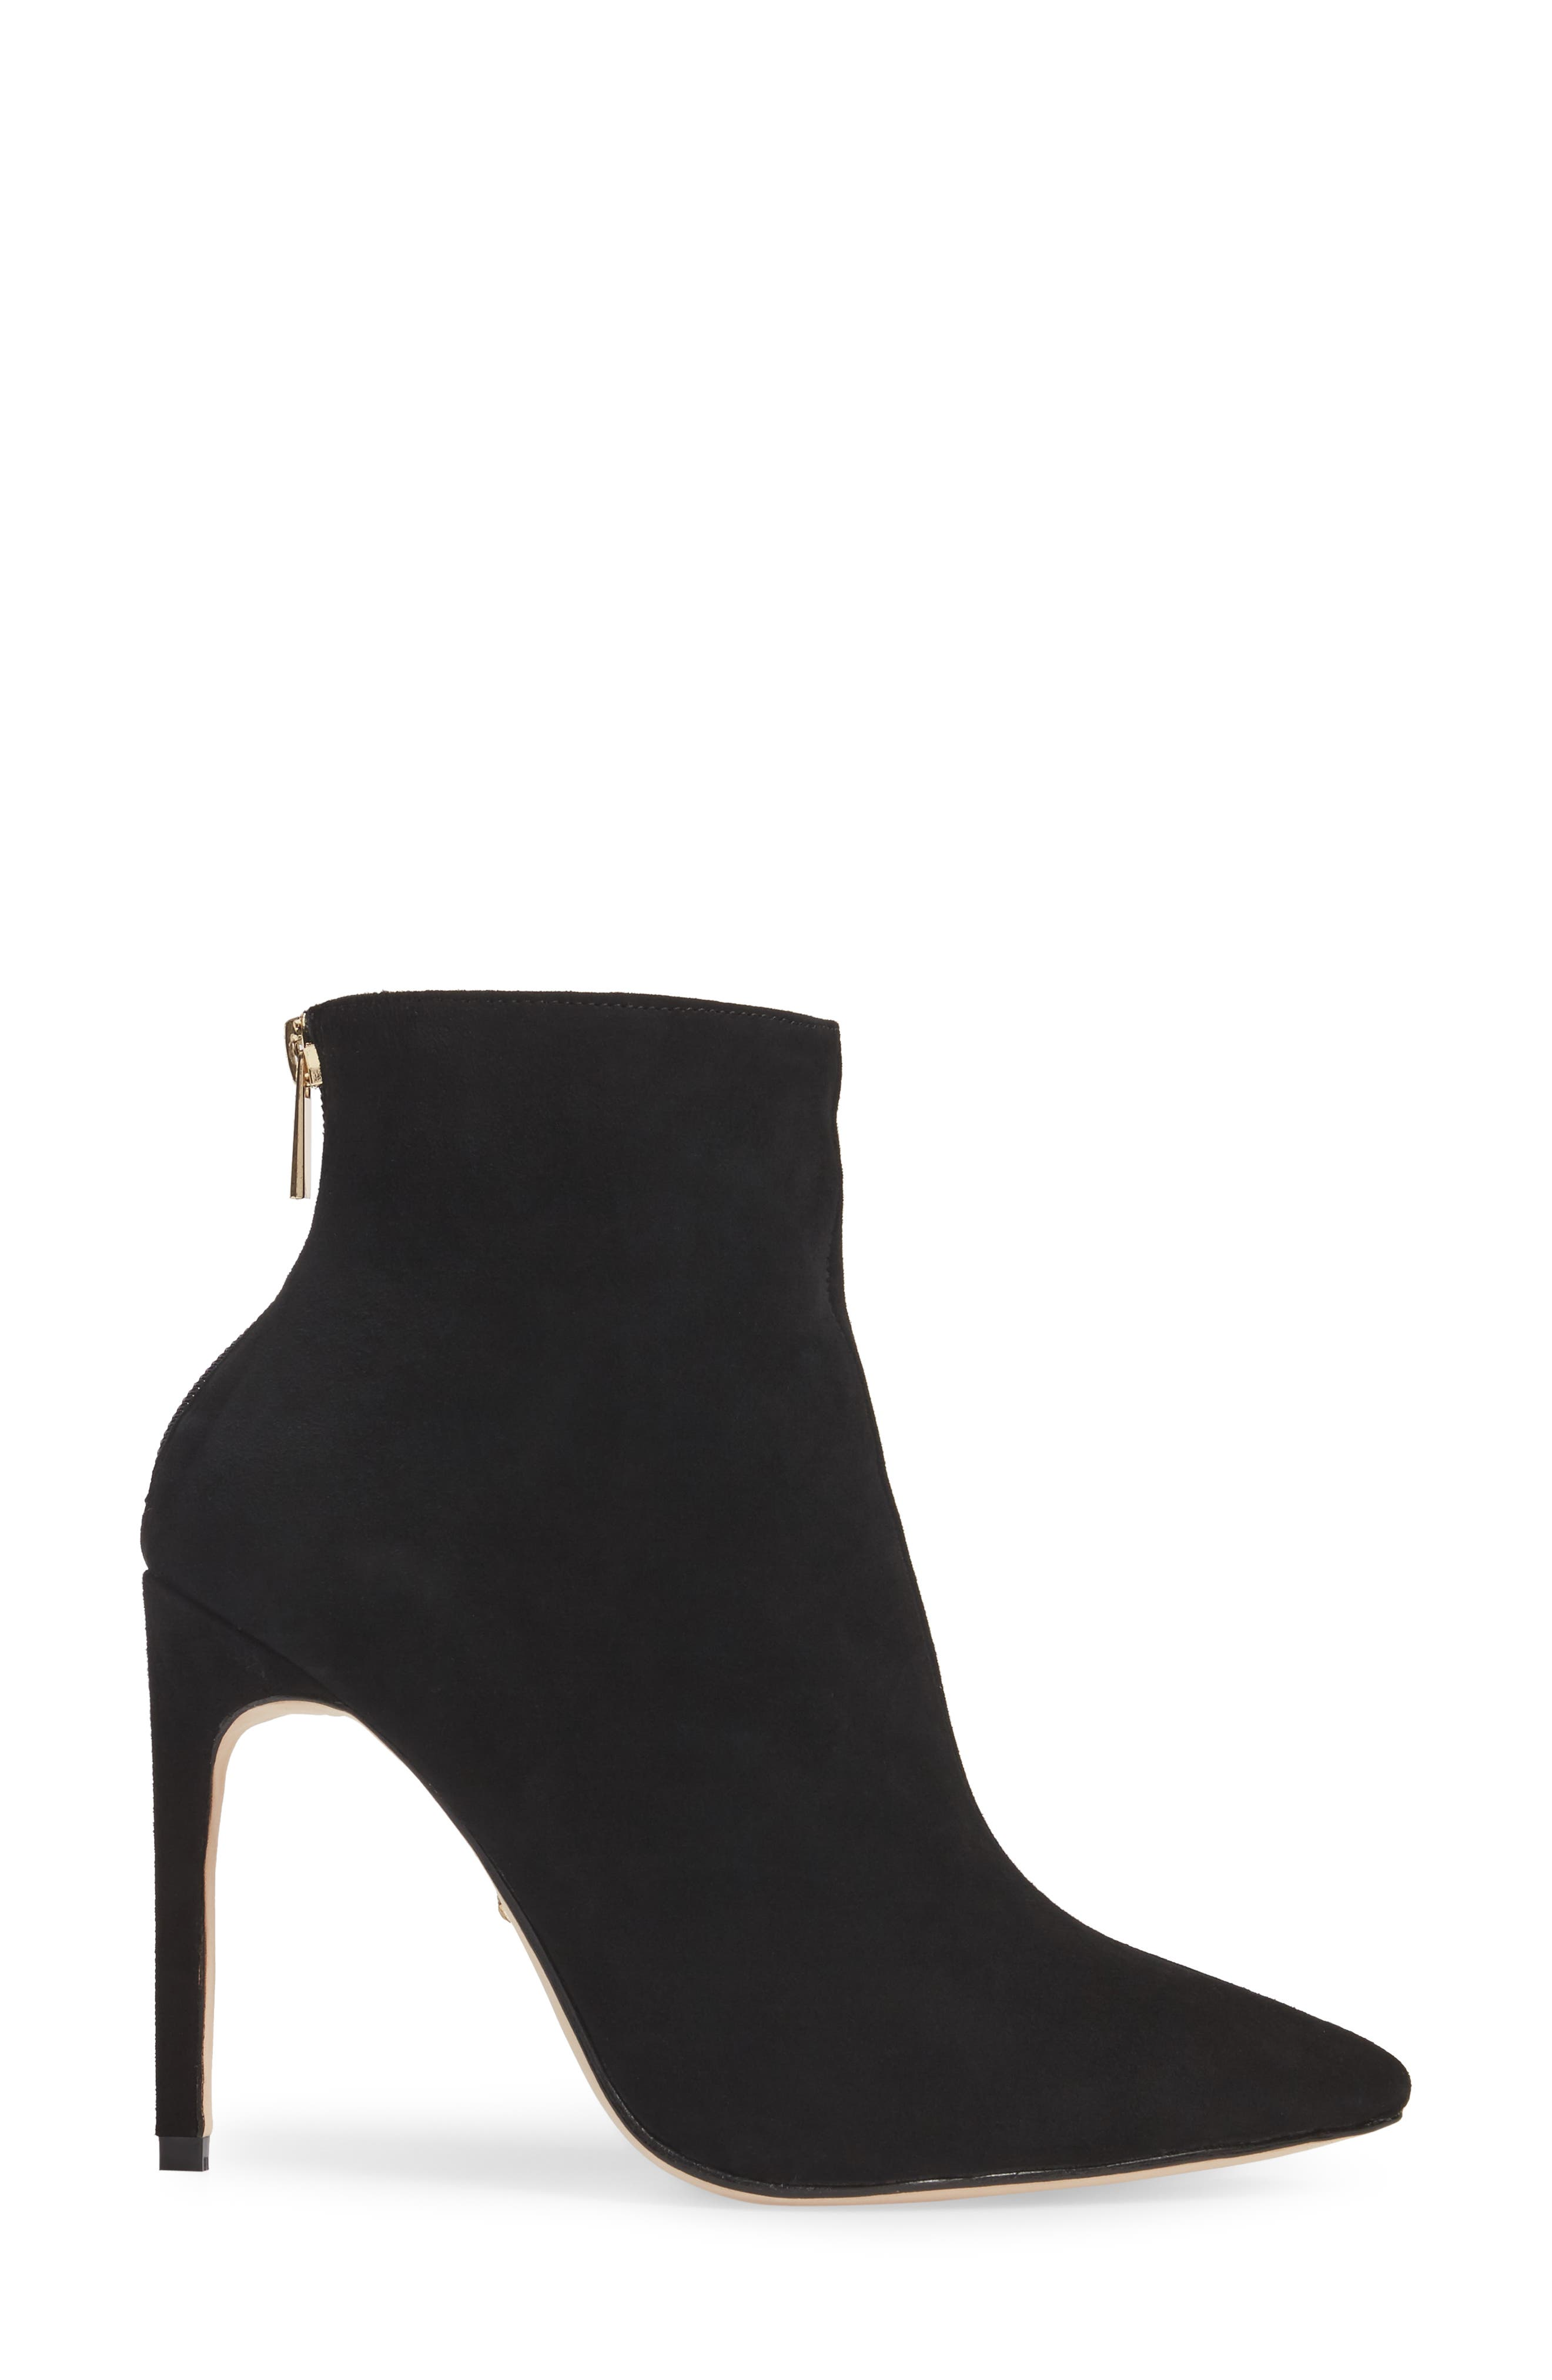 Tati Pointy Toe Bootie,                             Alternate thumbnail 3, color,                             Black Suede